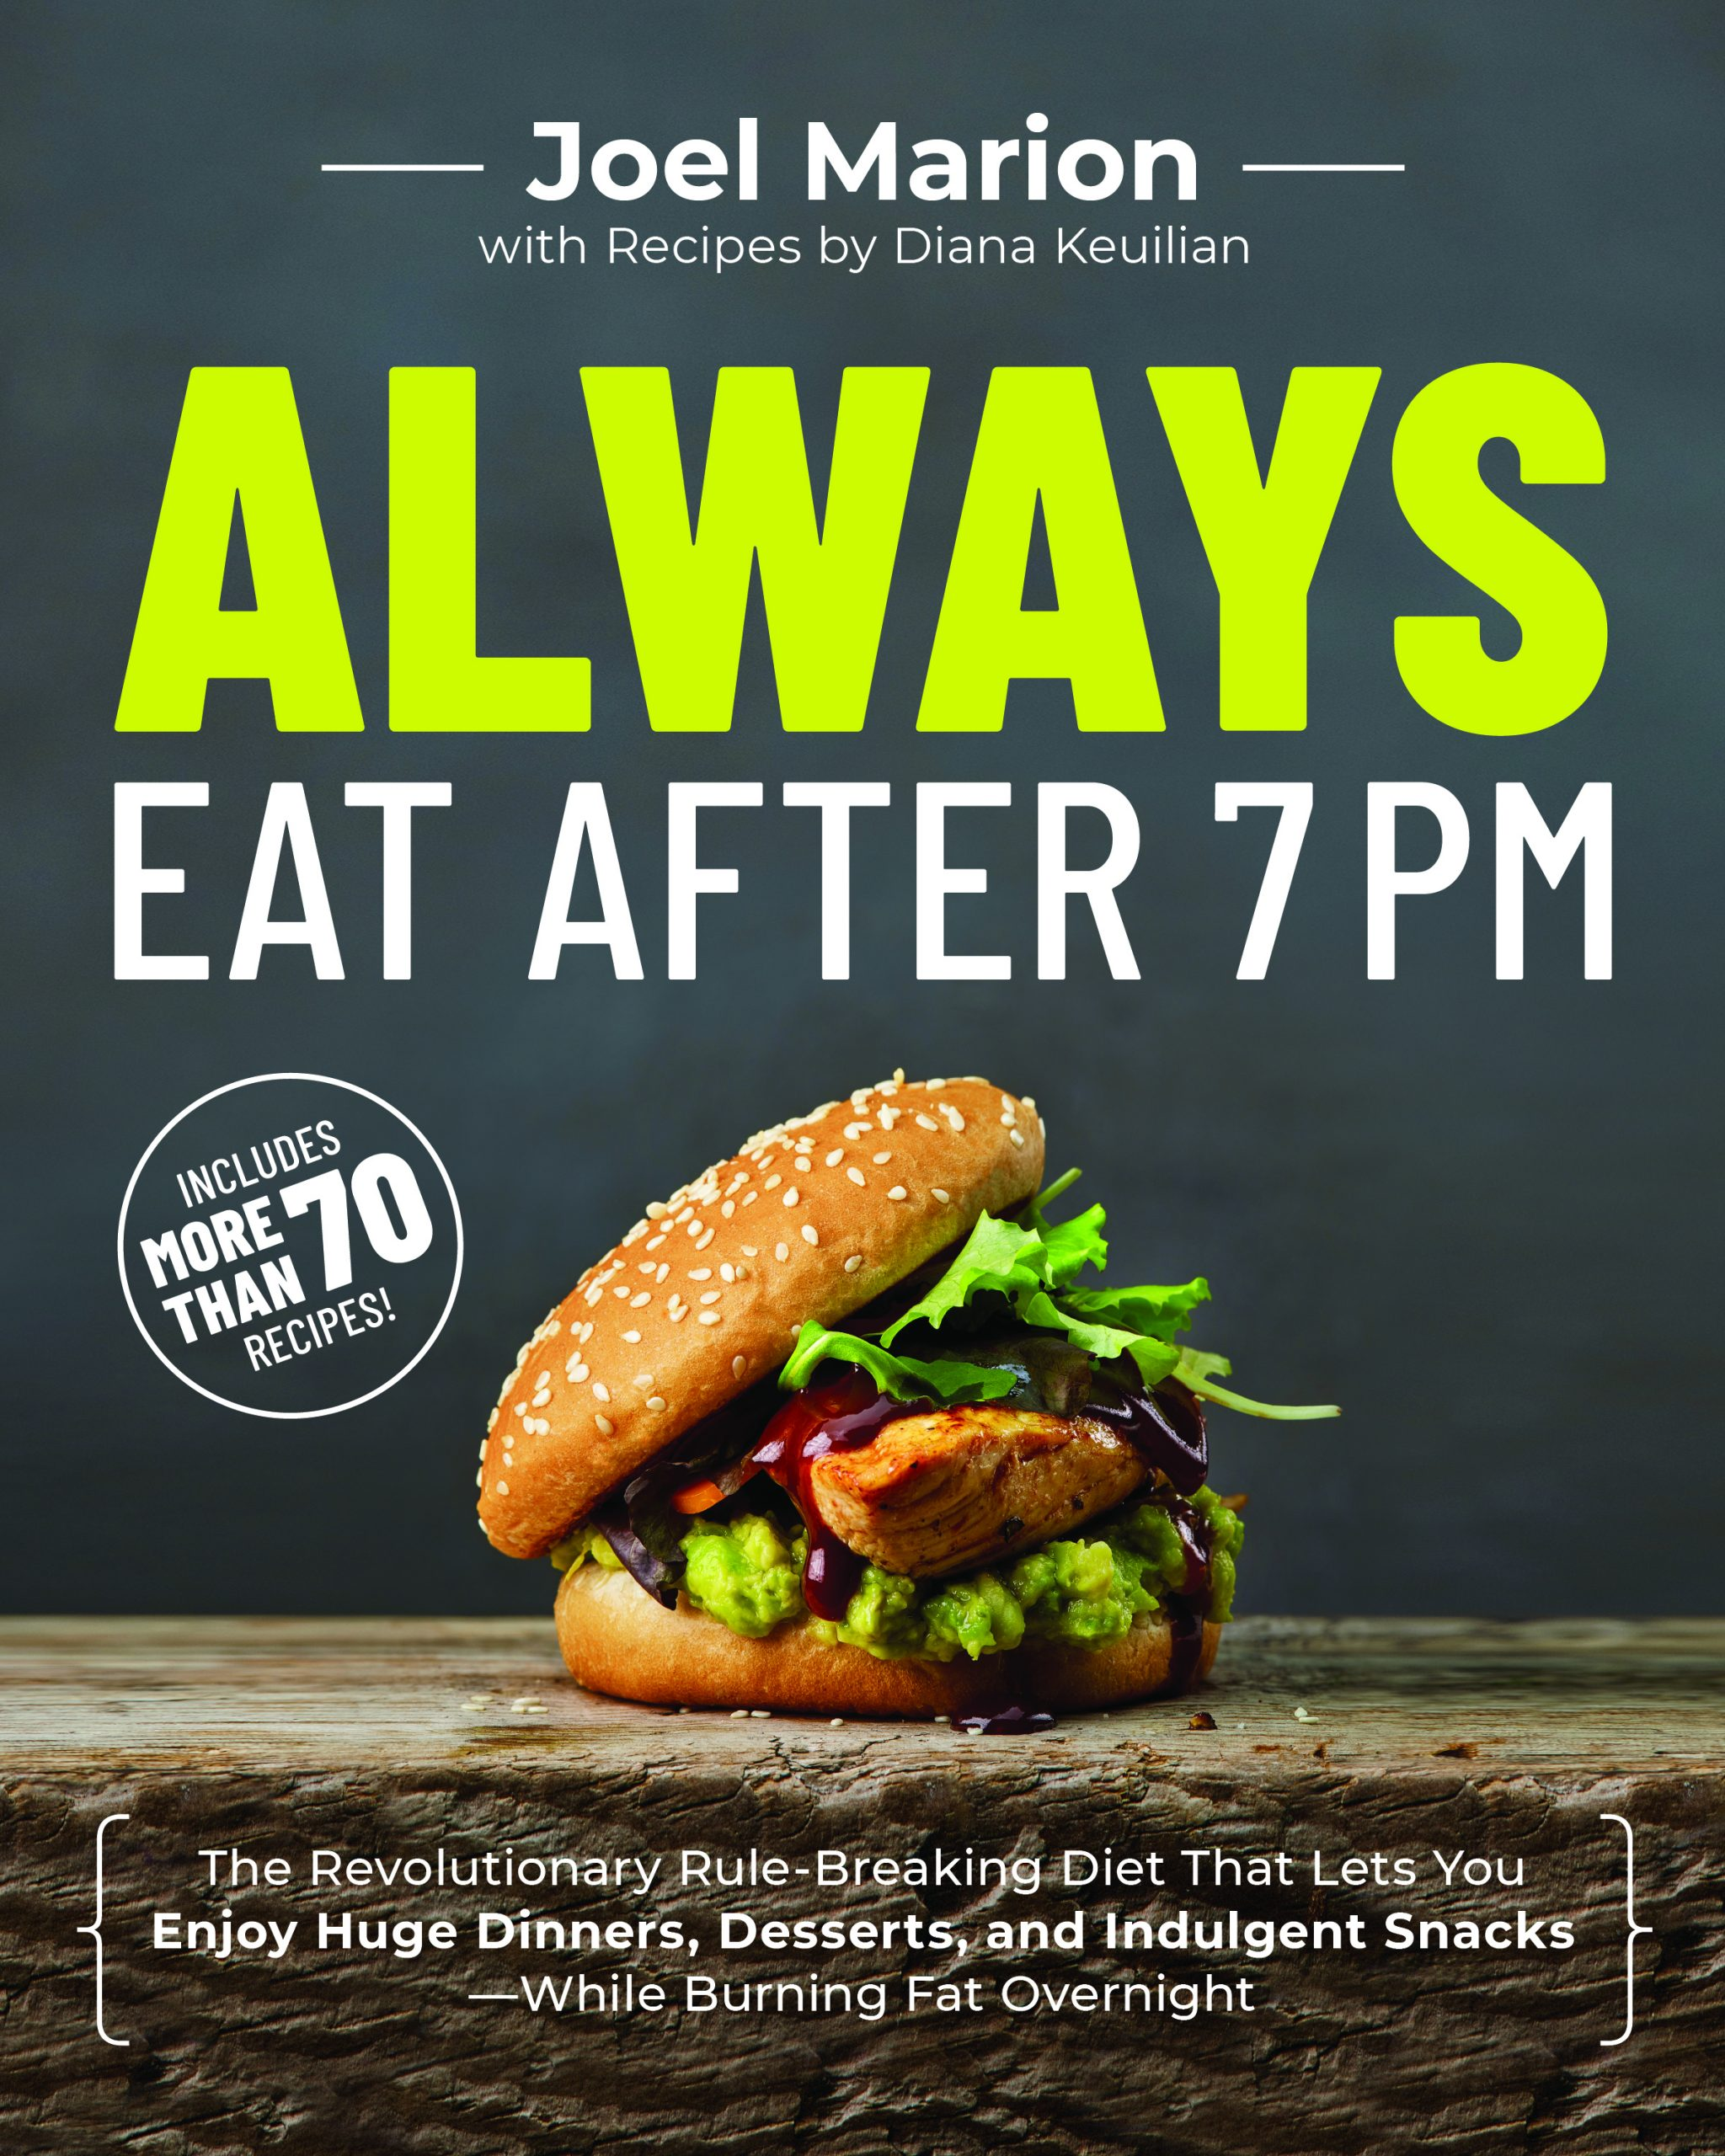 The Always Eat After 7PM book cover with a sandwich and the text ALWAYS Eat after 7pm